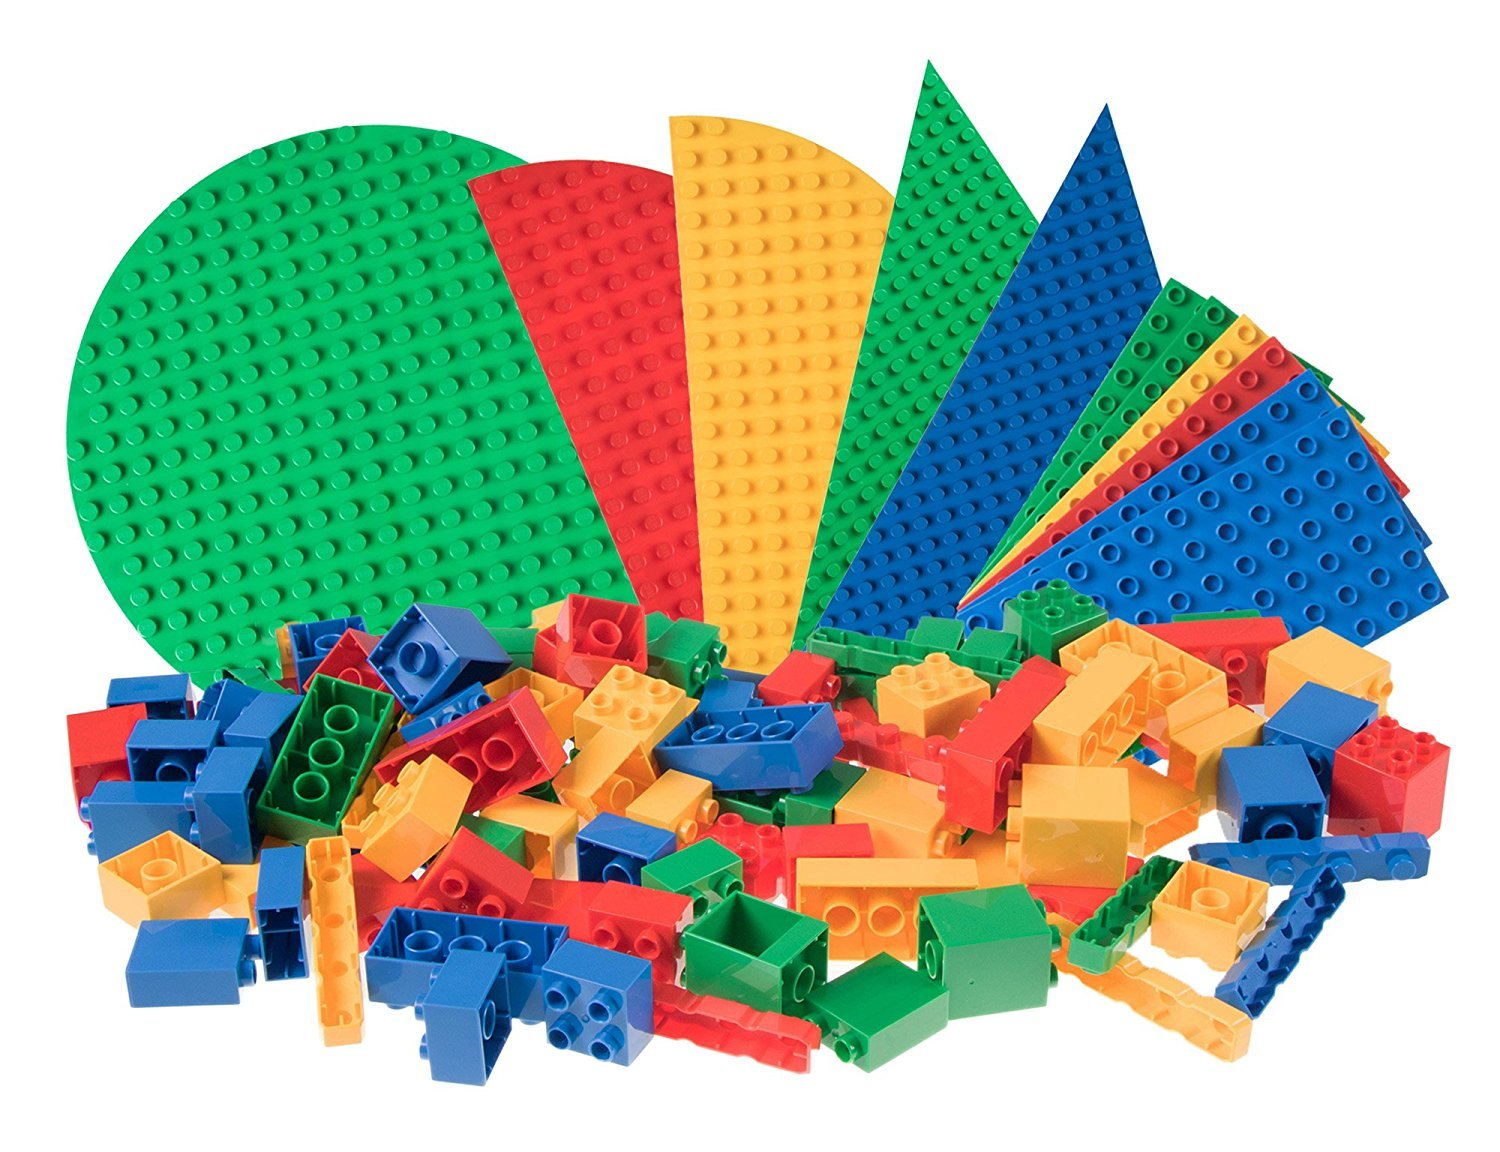 Classic Big Briks Baseplates by Strictly Bricks   119 Brick and Baseplate Pack   100% Compatible with All Major Large Brick Brands   Large Pegs   Blue, Green, Red, and Yellow